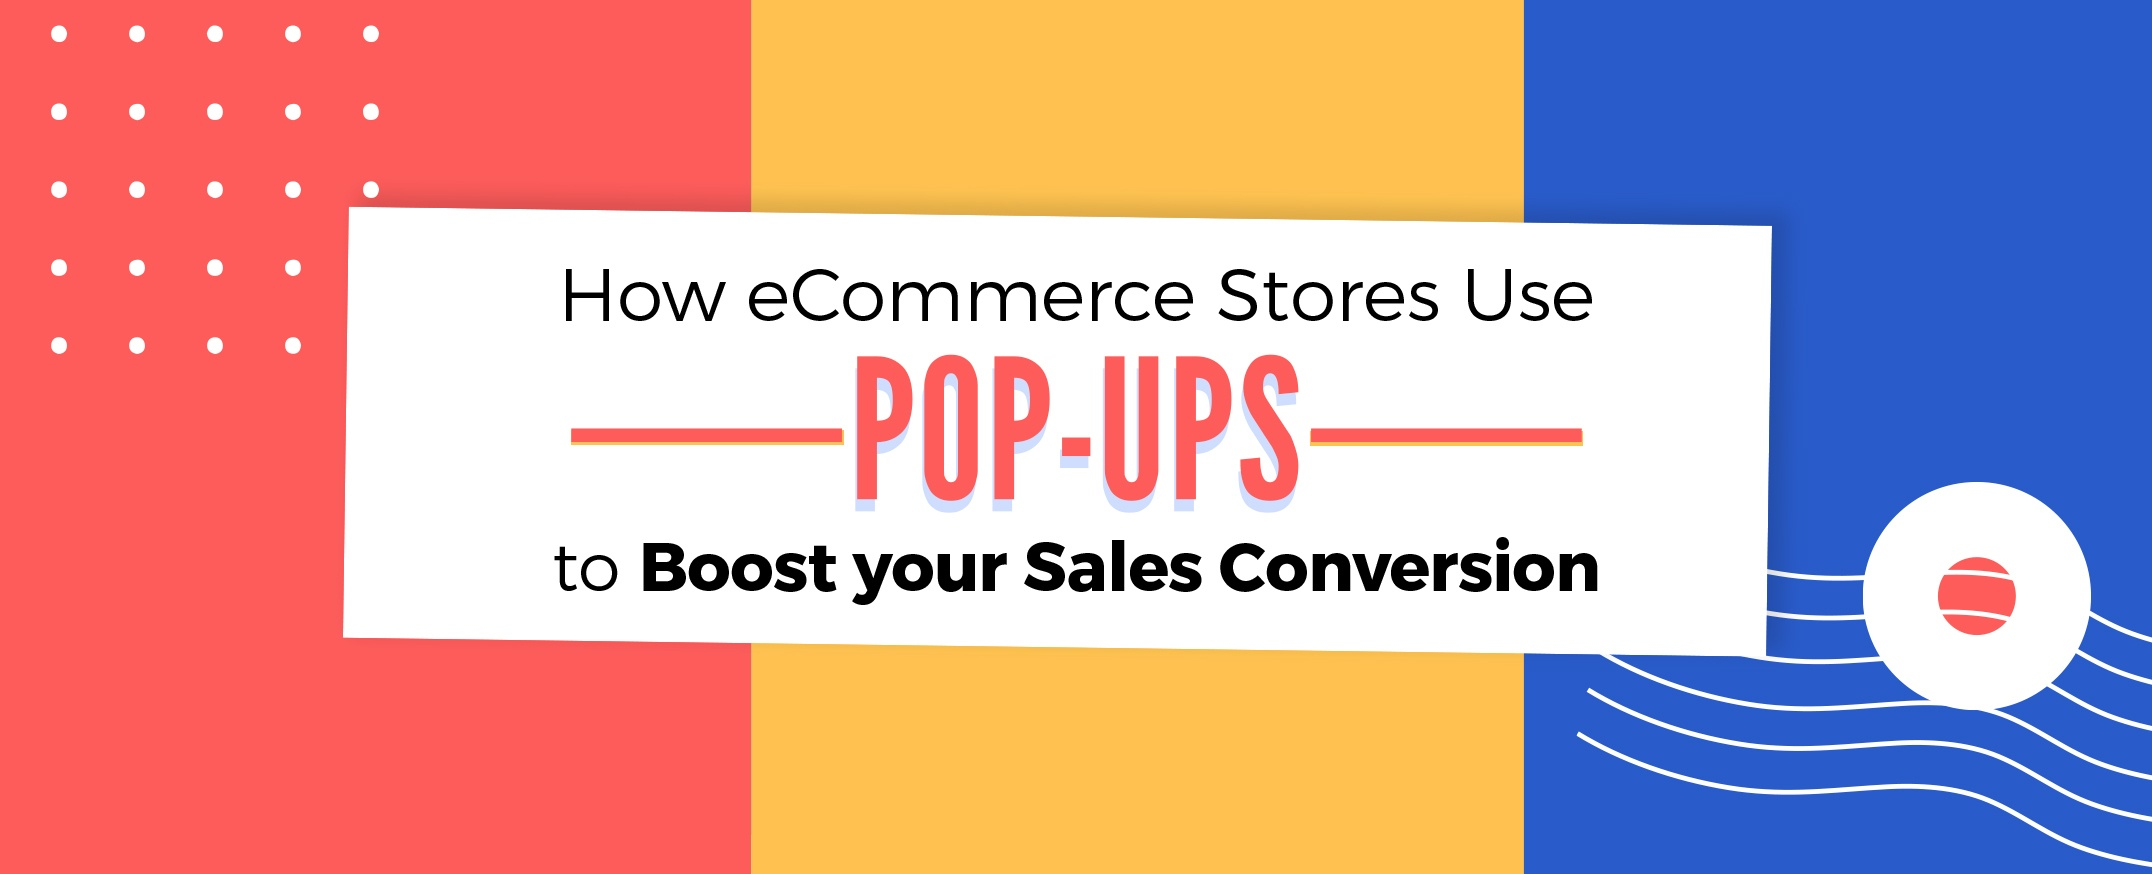 e-commerce-pop-ups-to-boost-your-sales